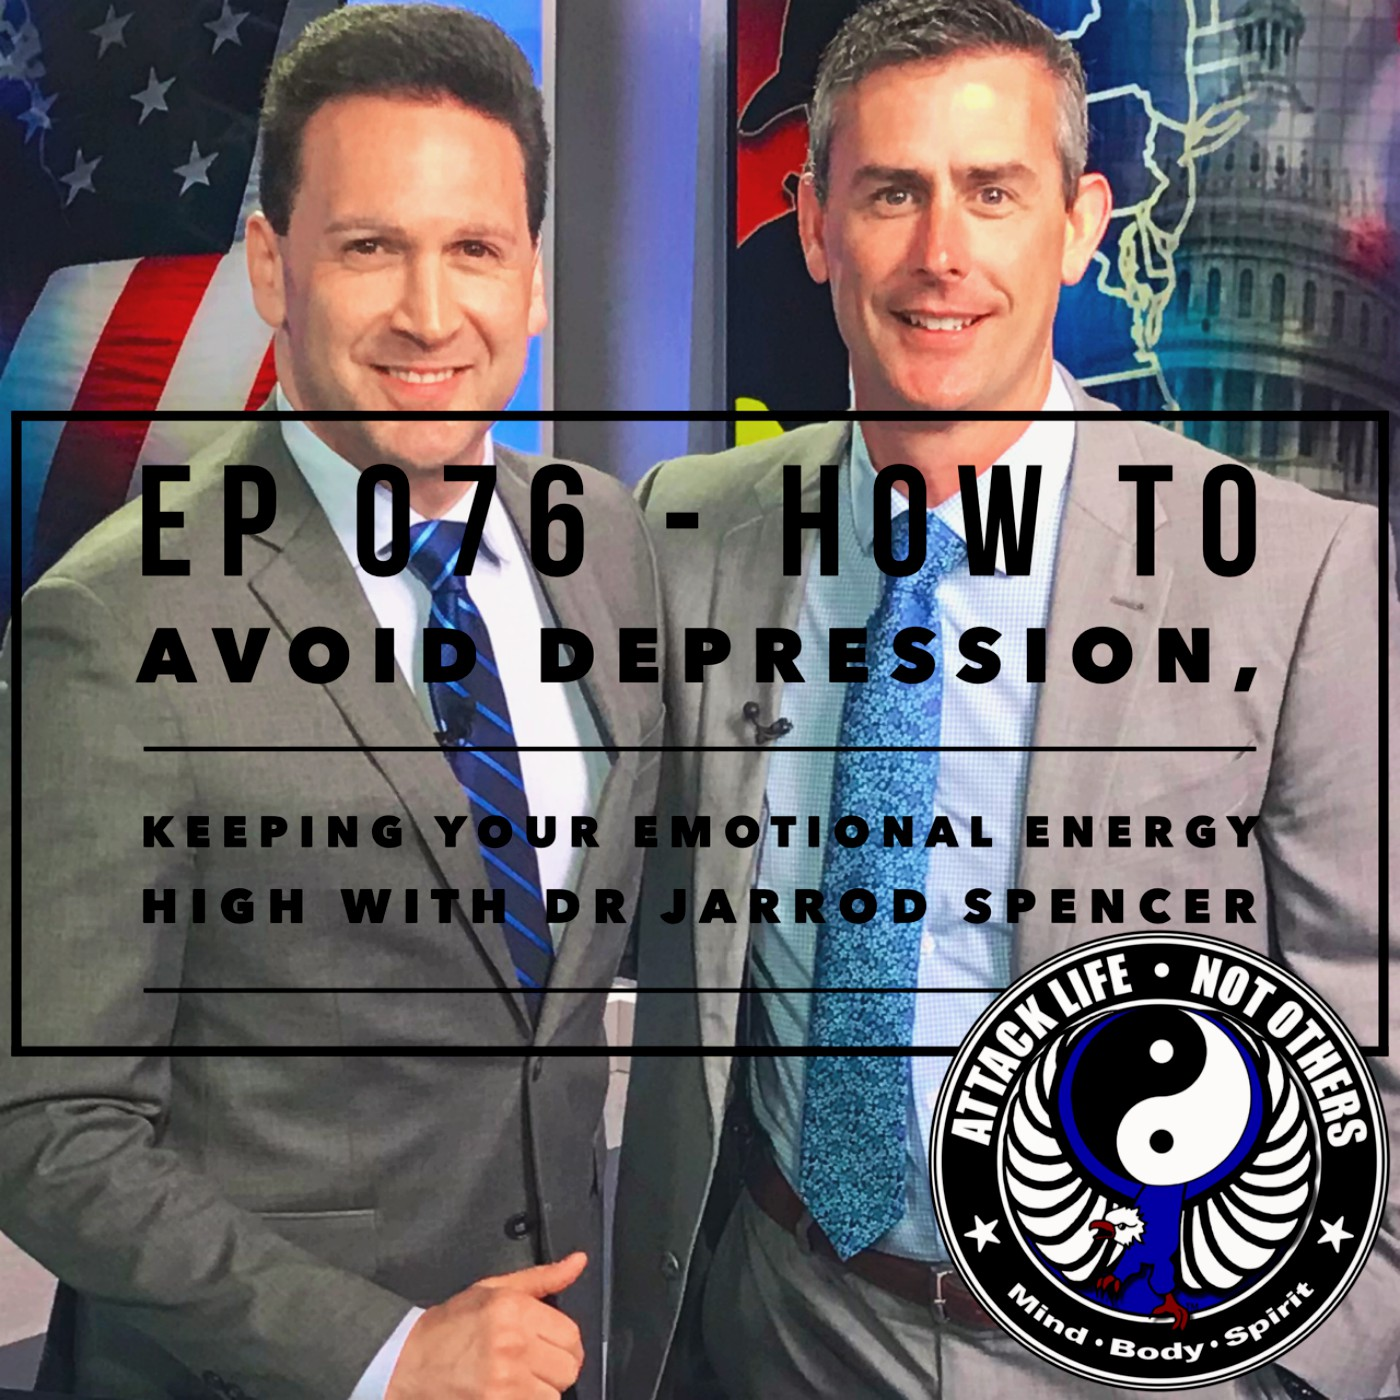 Ep 076 - How To Avoid Depression, Keeping Your Emotional Energy High with Dr Jarrod Spencer